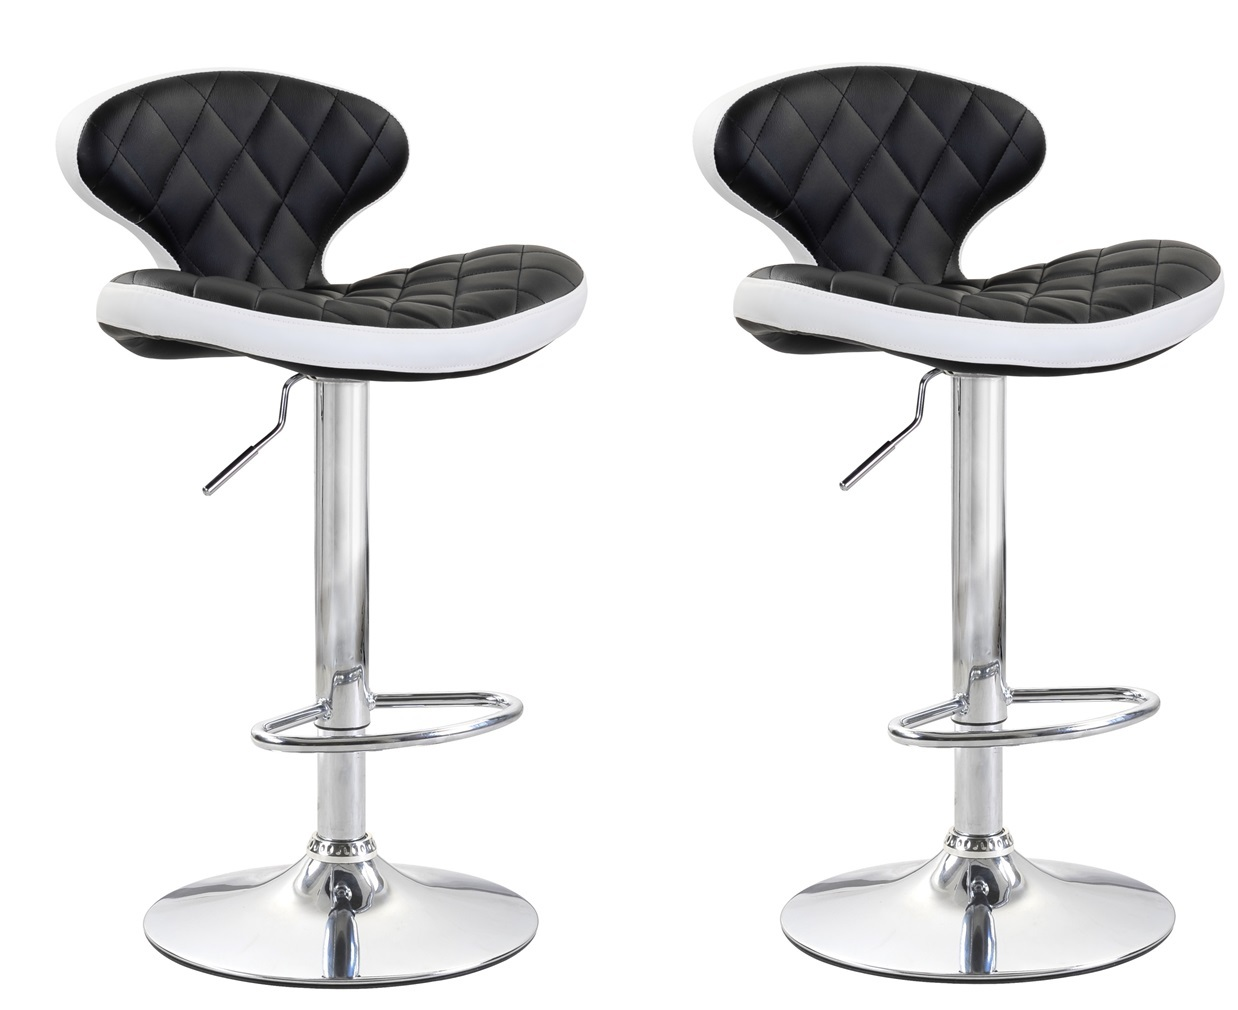 Viscologic Series Mystique Height Adjule Swivel 24 To 33 Inch Bar Stool Set Of 2 Stools